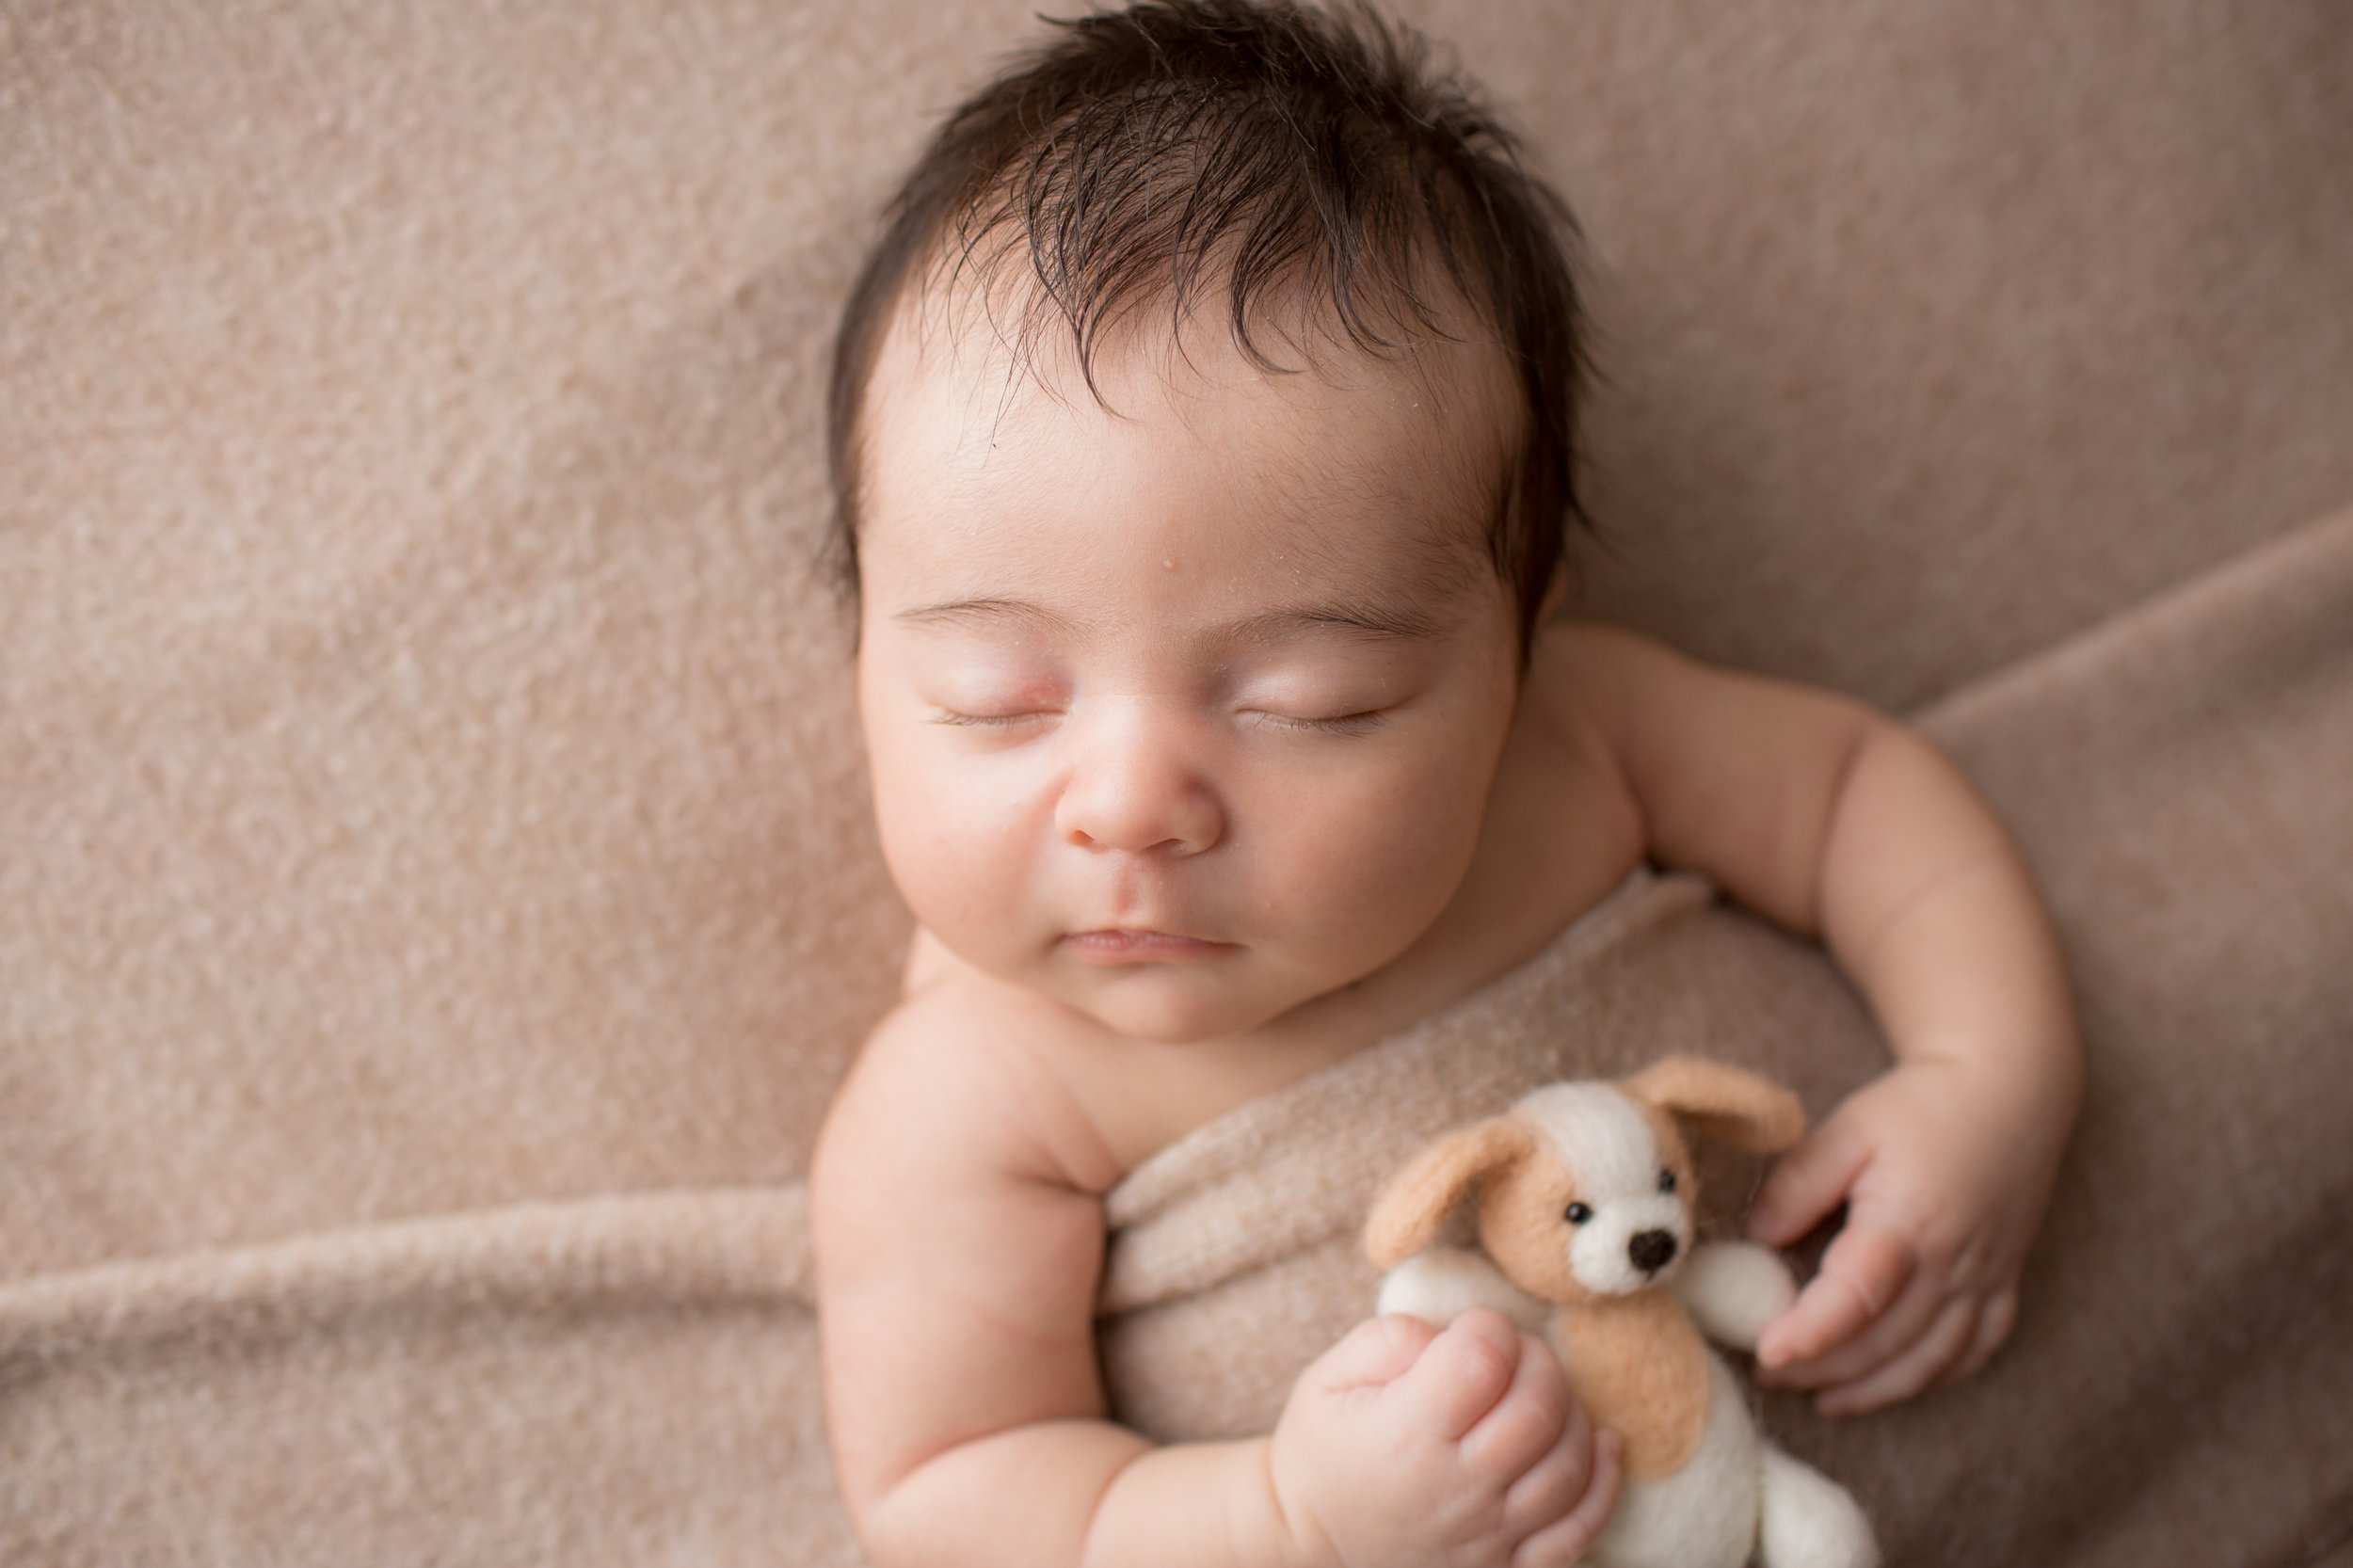 newborn baby boy under blanket holding a puppy for professional photo session.